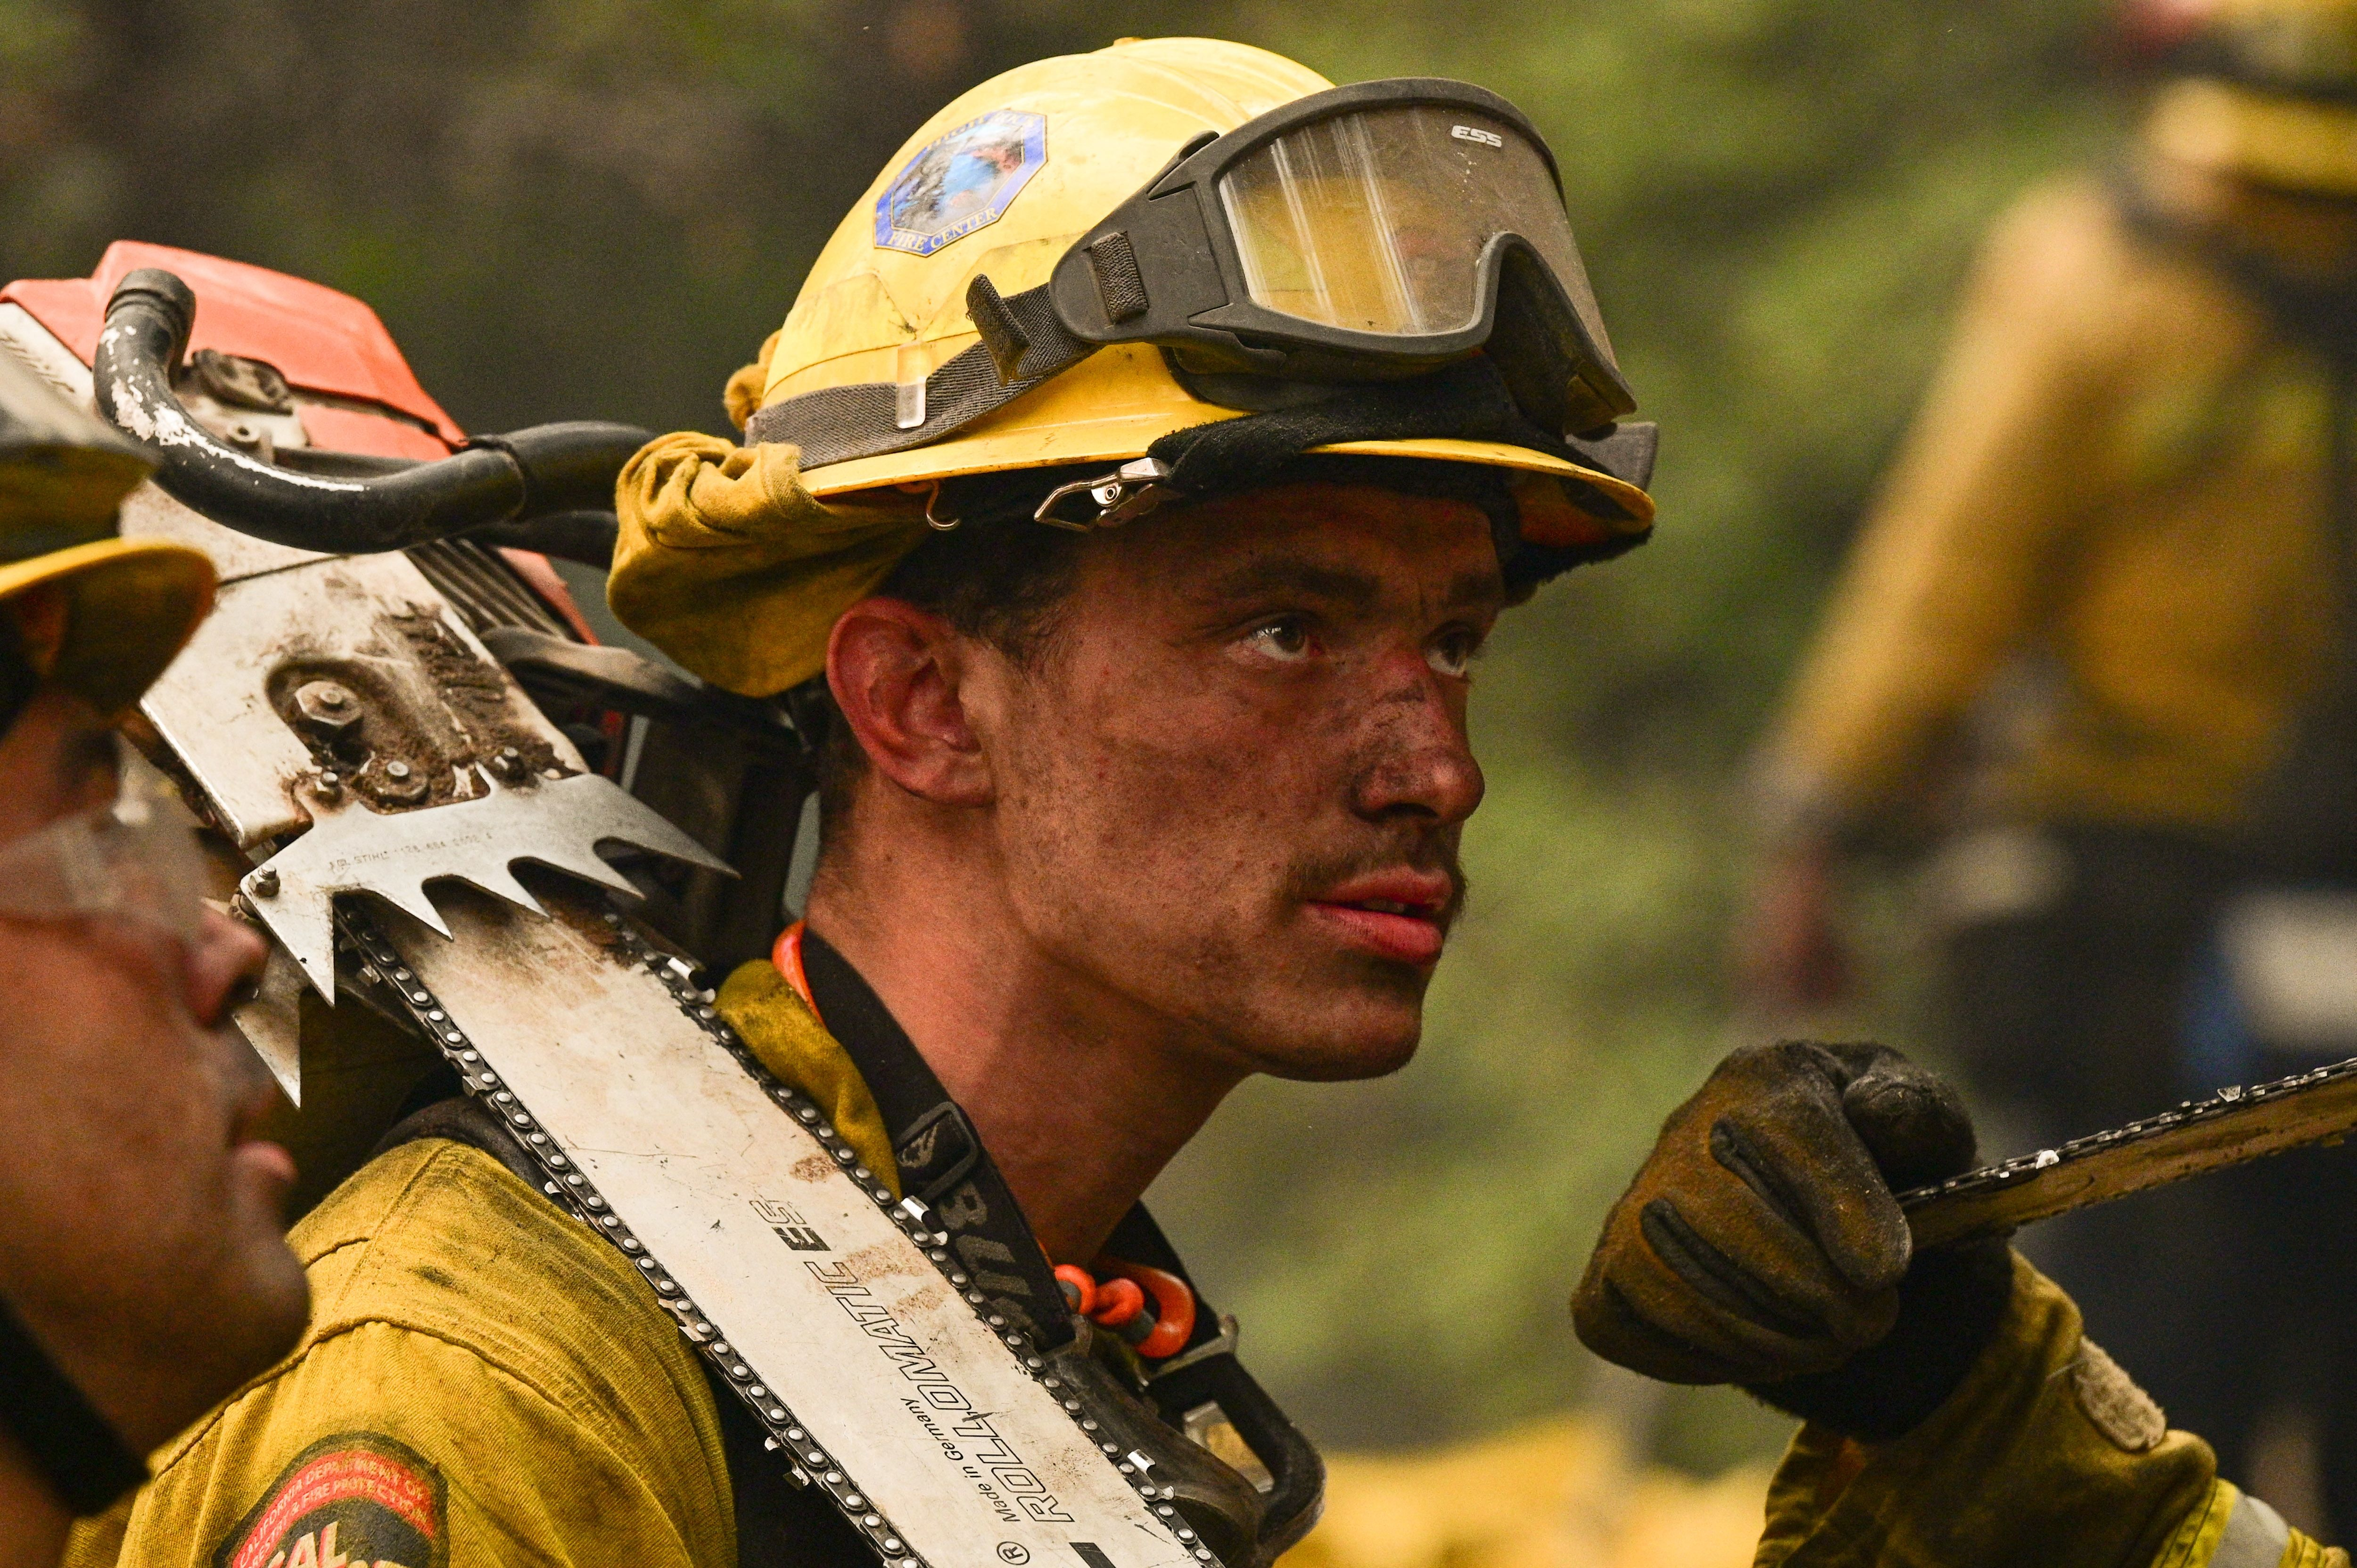 On July 26, 2021, firefighters extinguished hot spots near the oldest mountain cabins on a hill in Dixie Fire, Twain, California.